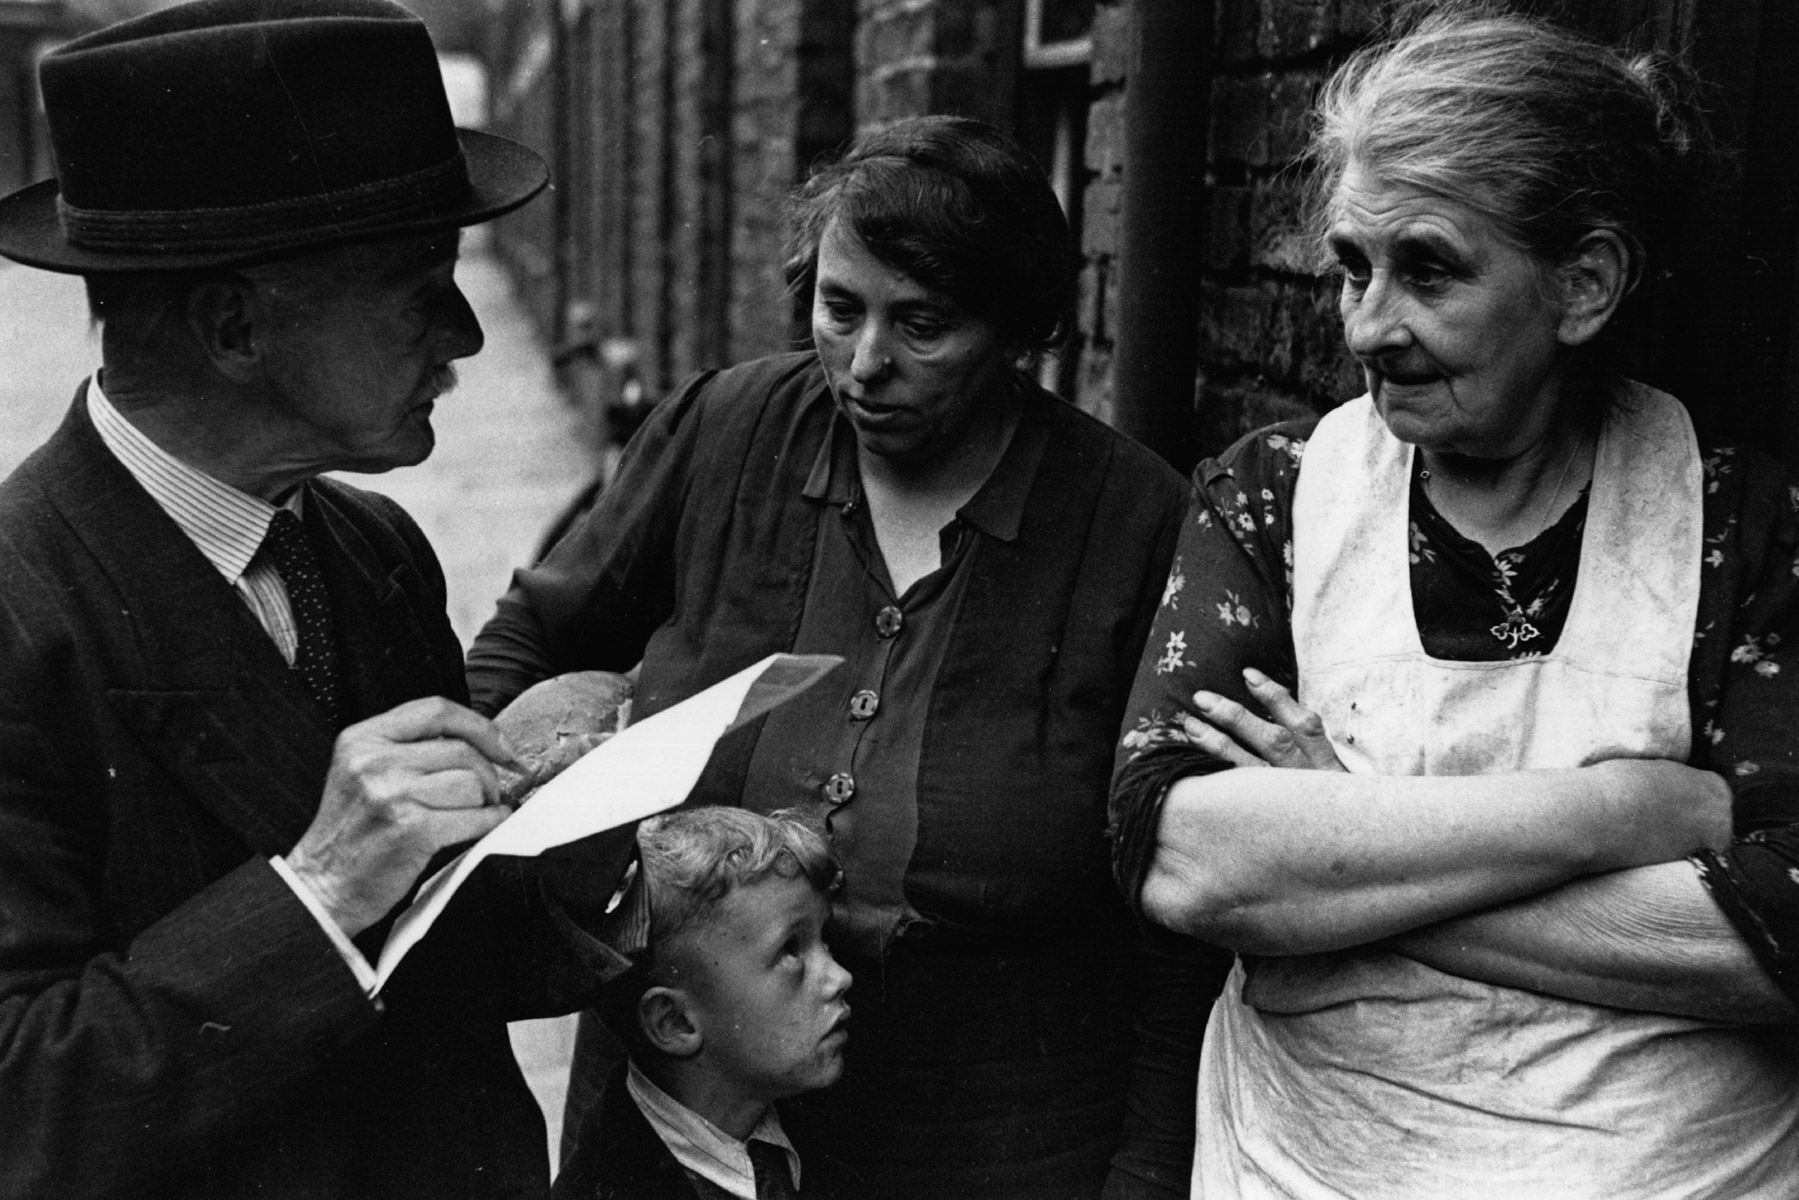 1944: People take part in a doorstep survey about the need for a National Health Service in Britain. (Photograph by Felix Man/ Getty Images)